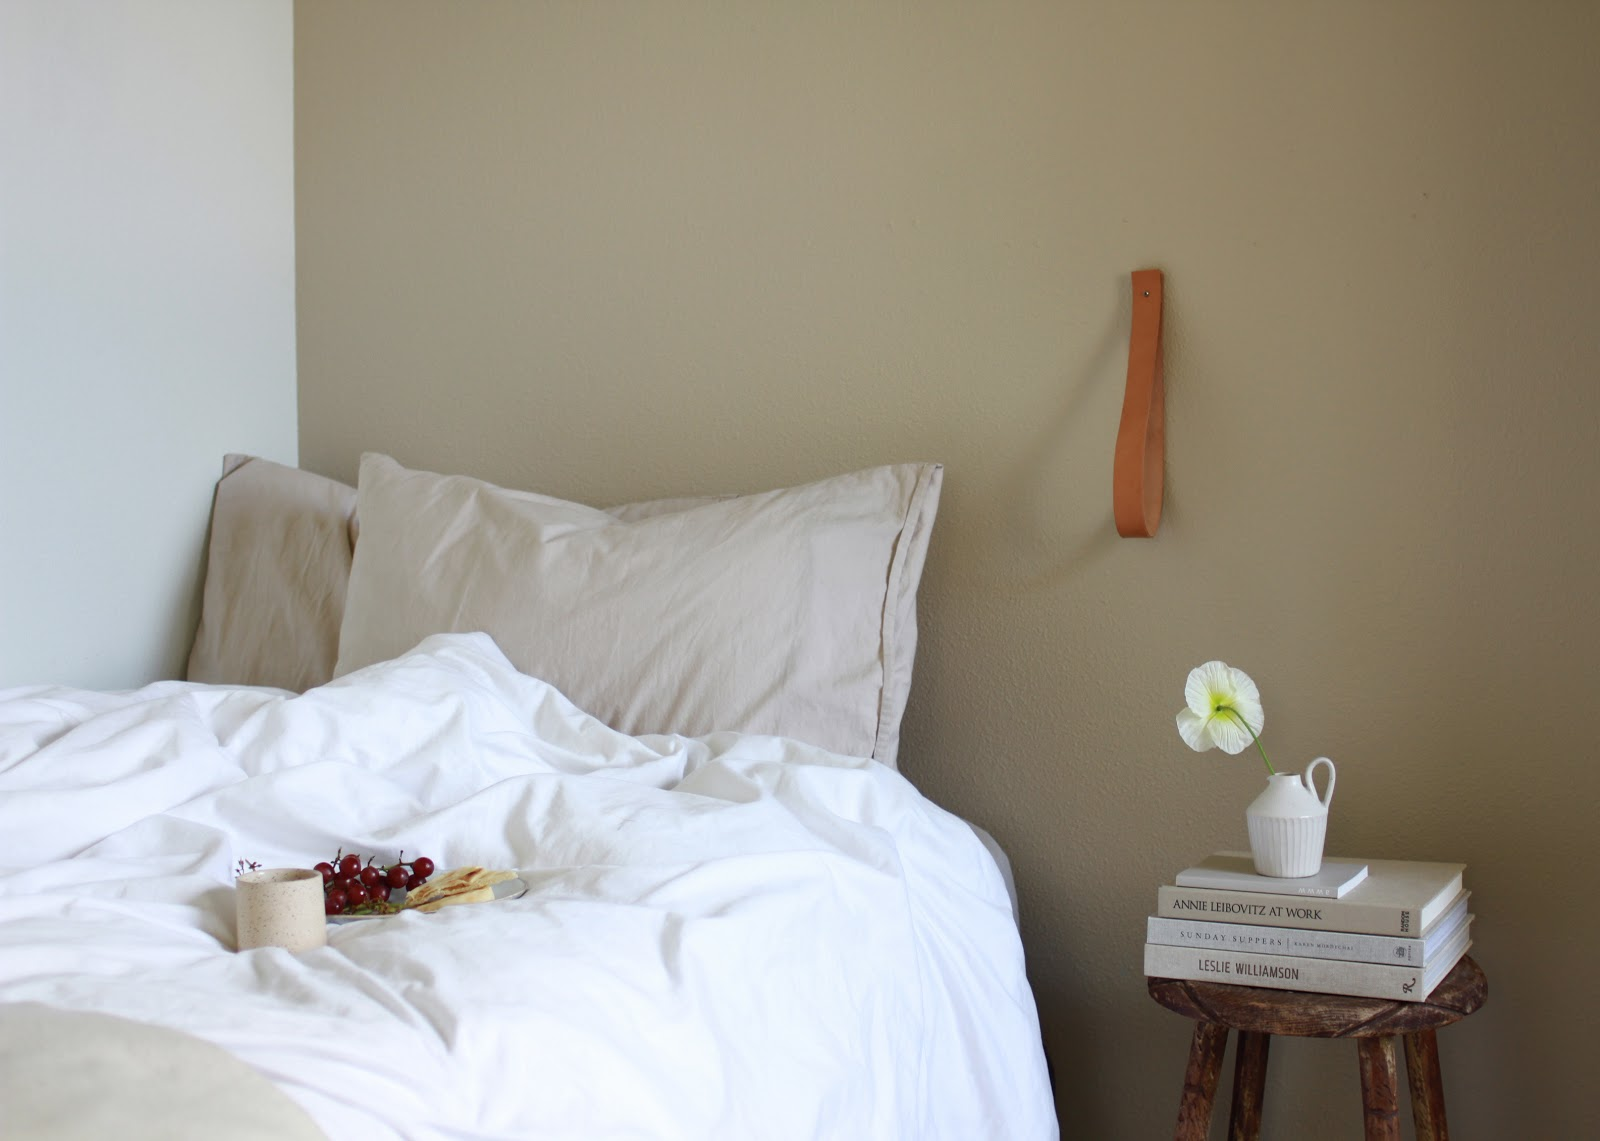 What's really going on with all that white bedding?